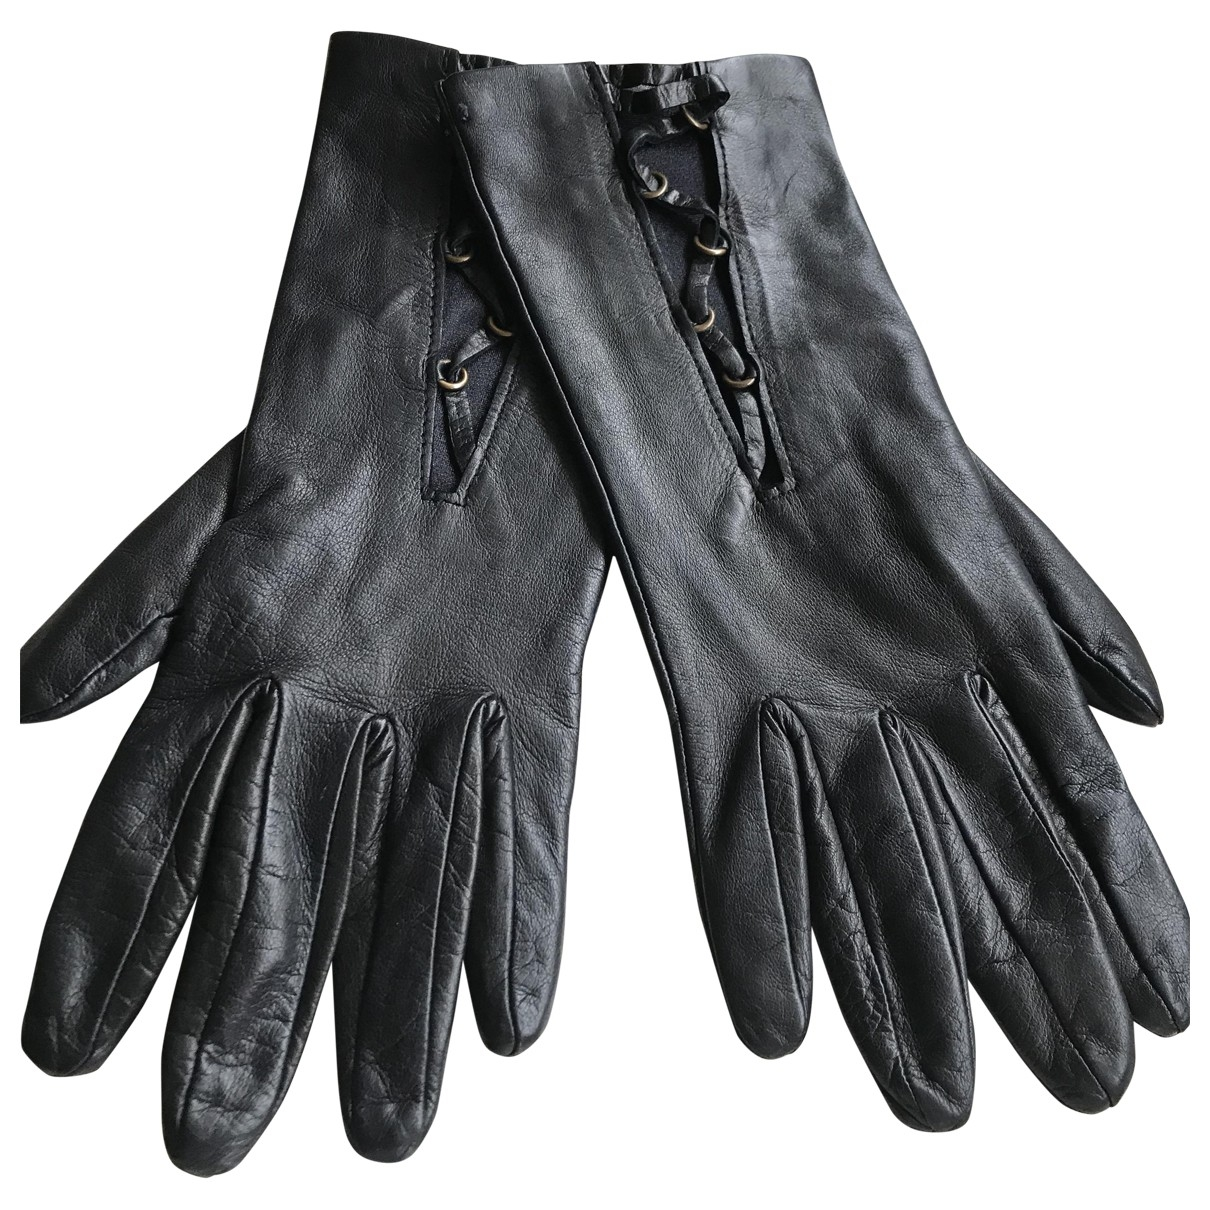 Versus \N Black Leather Gloves for Women 7.5 Inches